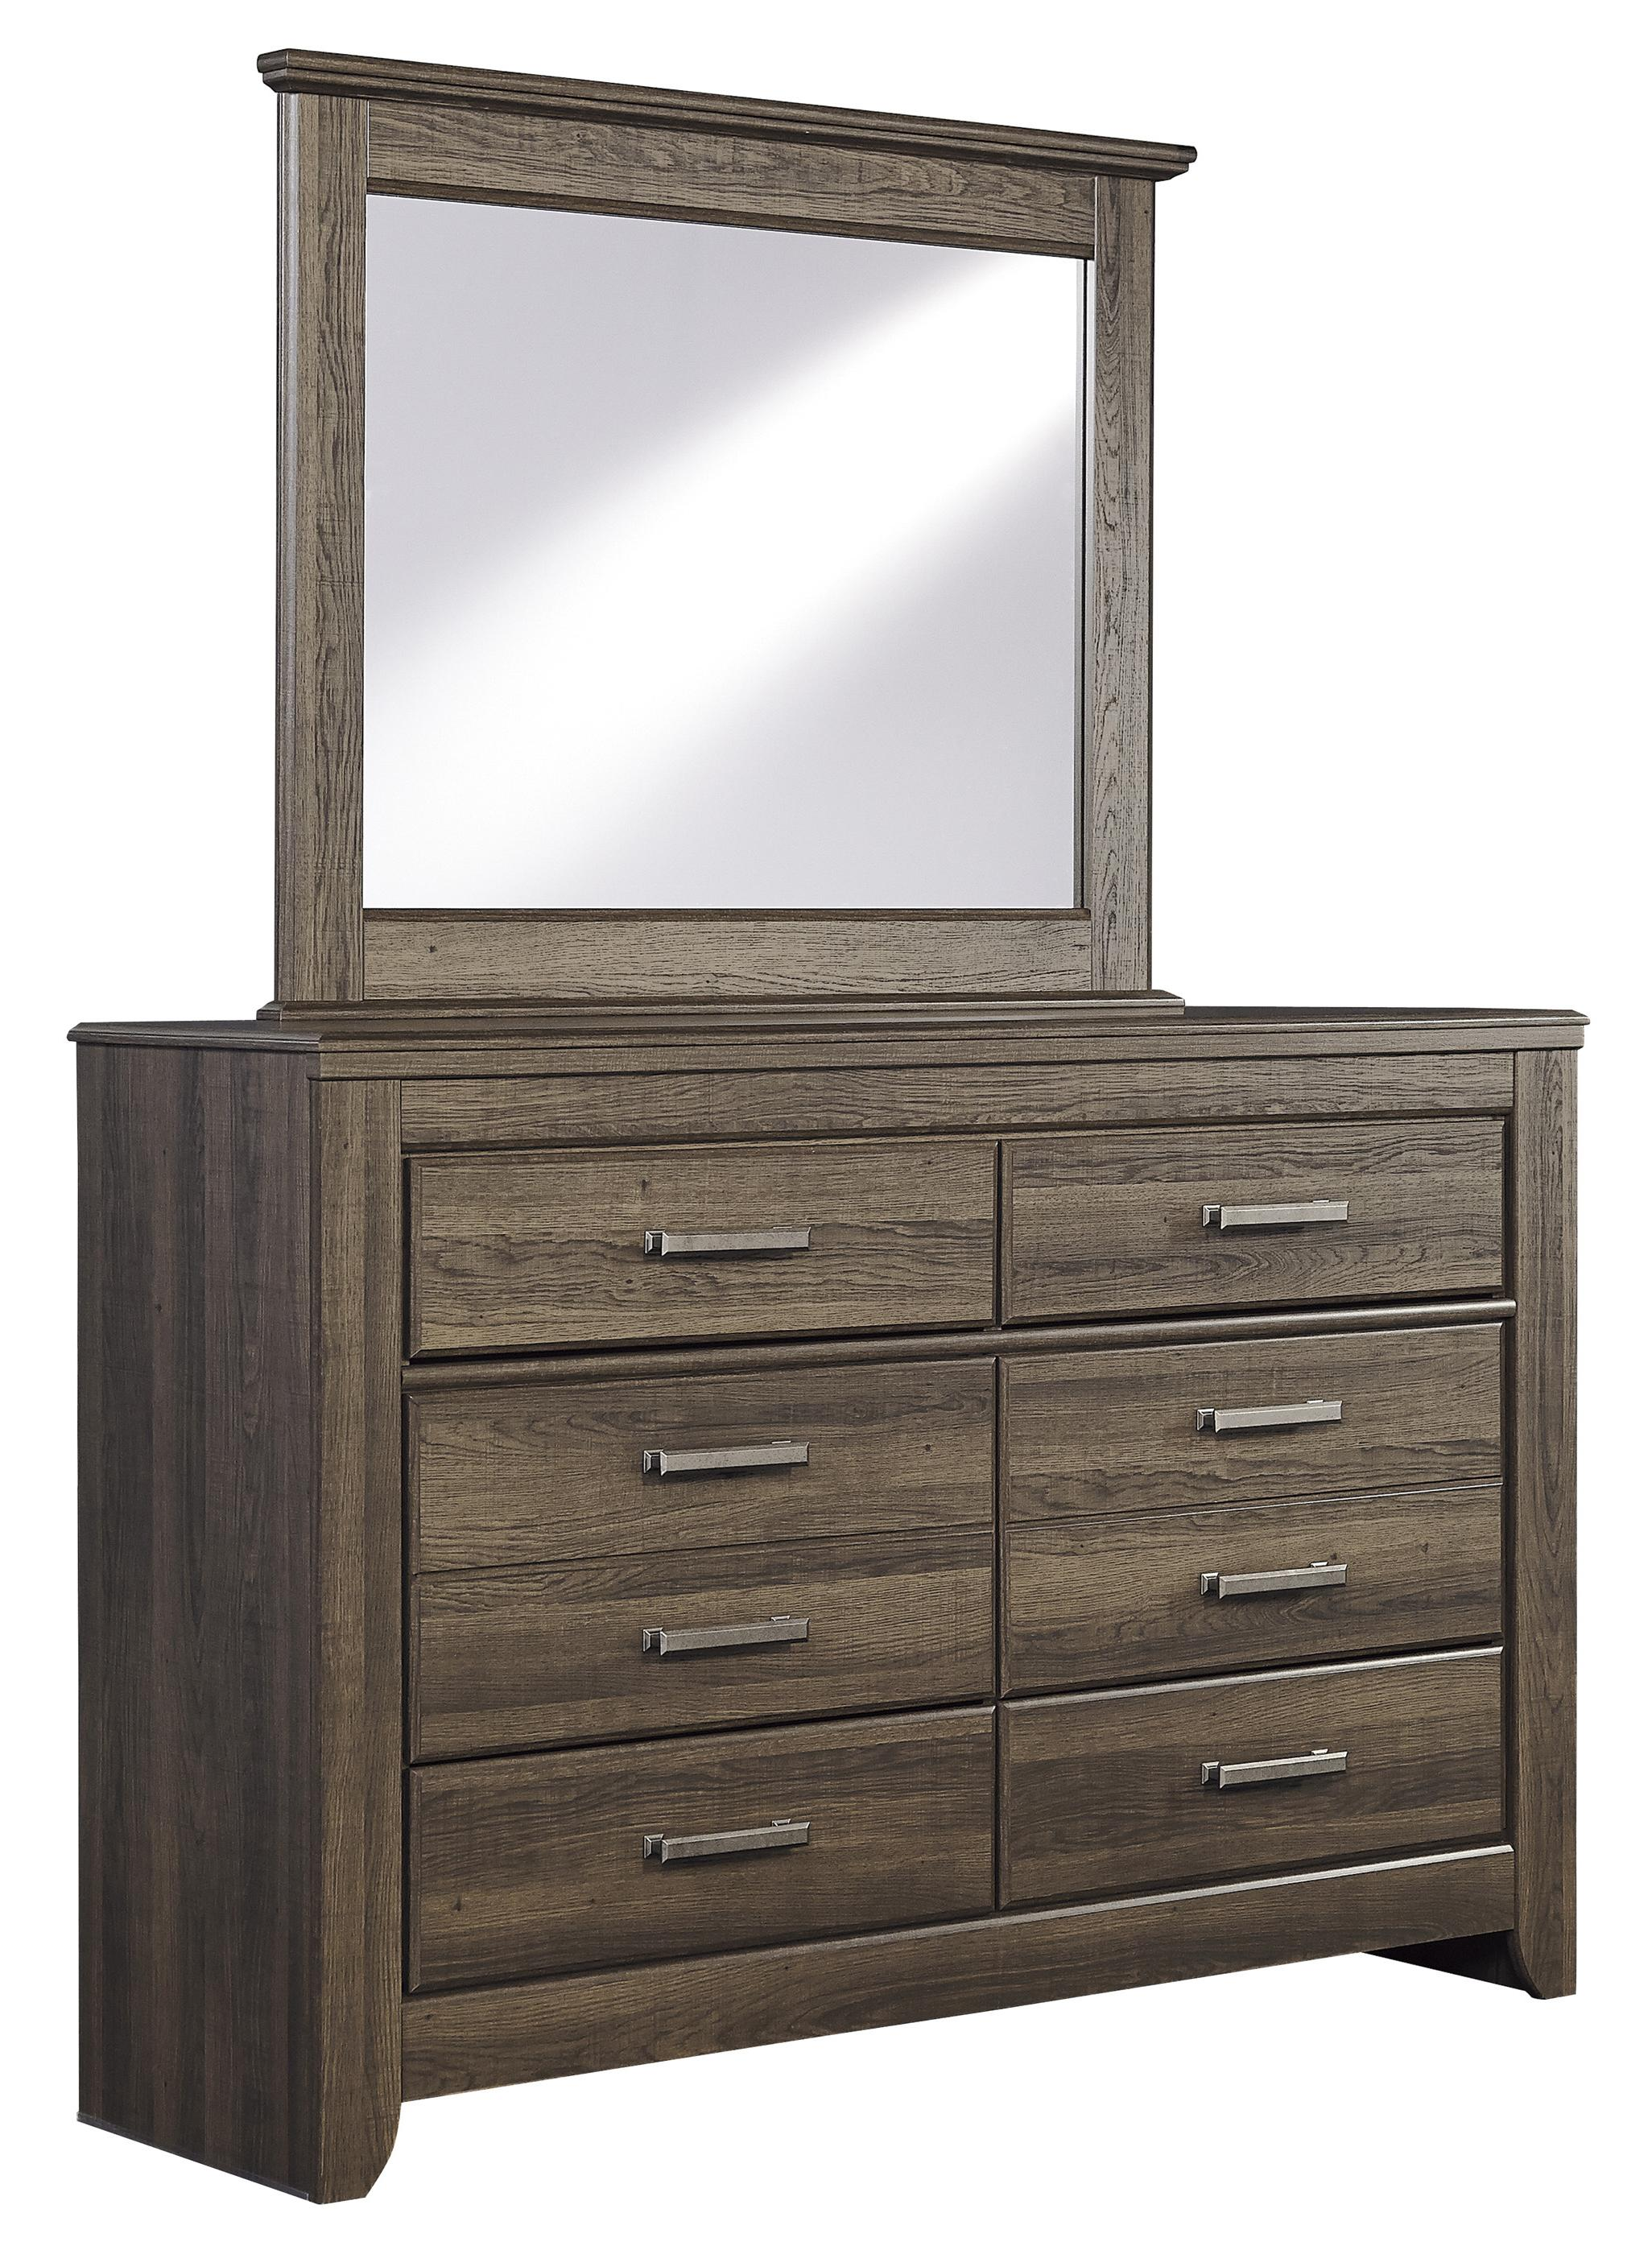 Juararo Dresser & Mirror by Signature Design by Ashley at HomeWorld Furniture